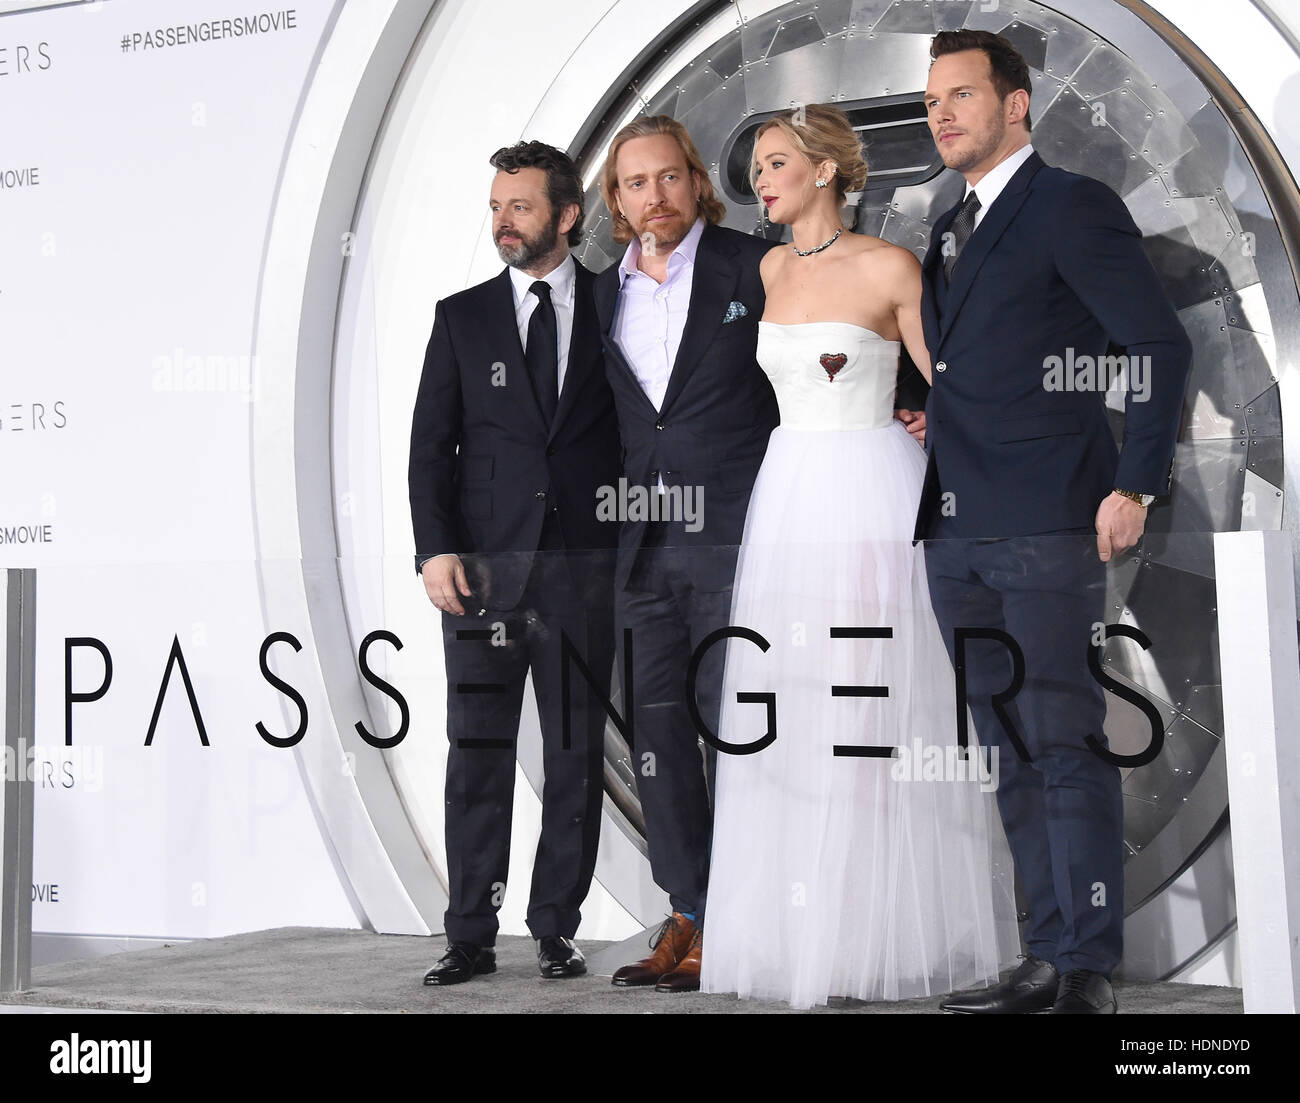 Westwood, California, USA. 14 de diciembre, 2016. Michael Sheen, Morten Tyldum, Jennifer Lawrence y Chris Pratt Imagen De Stock